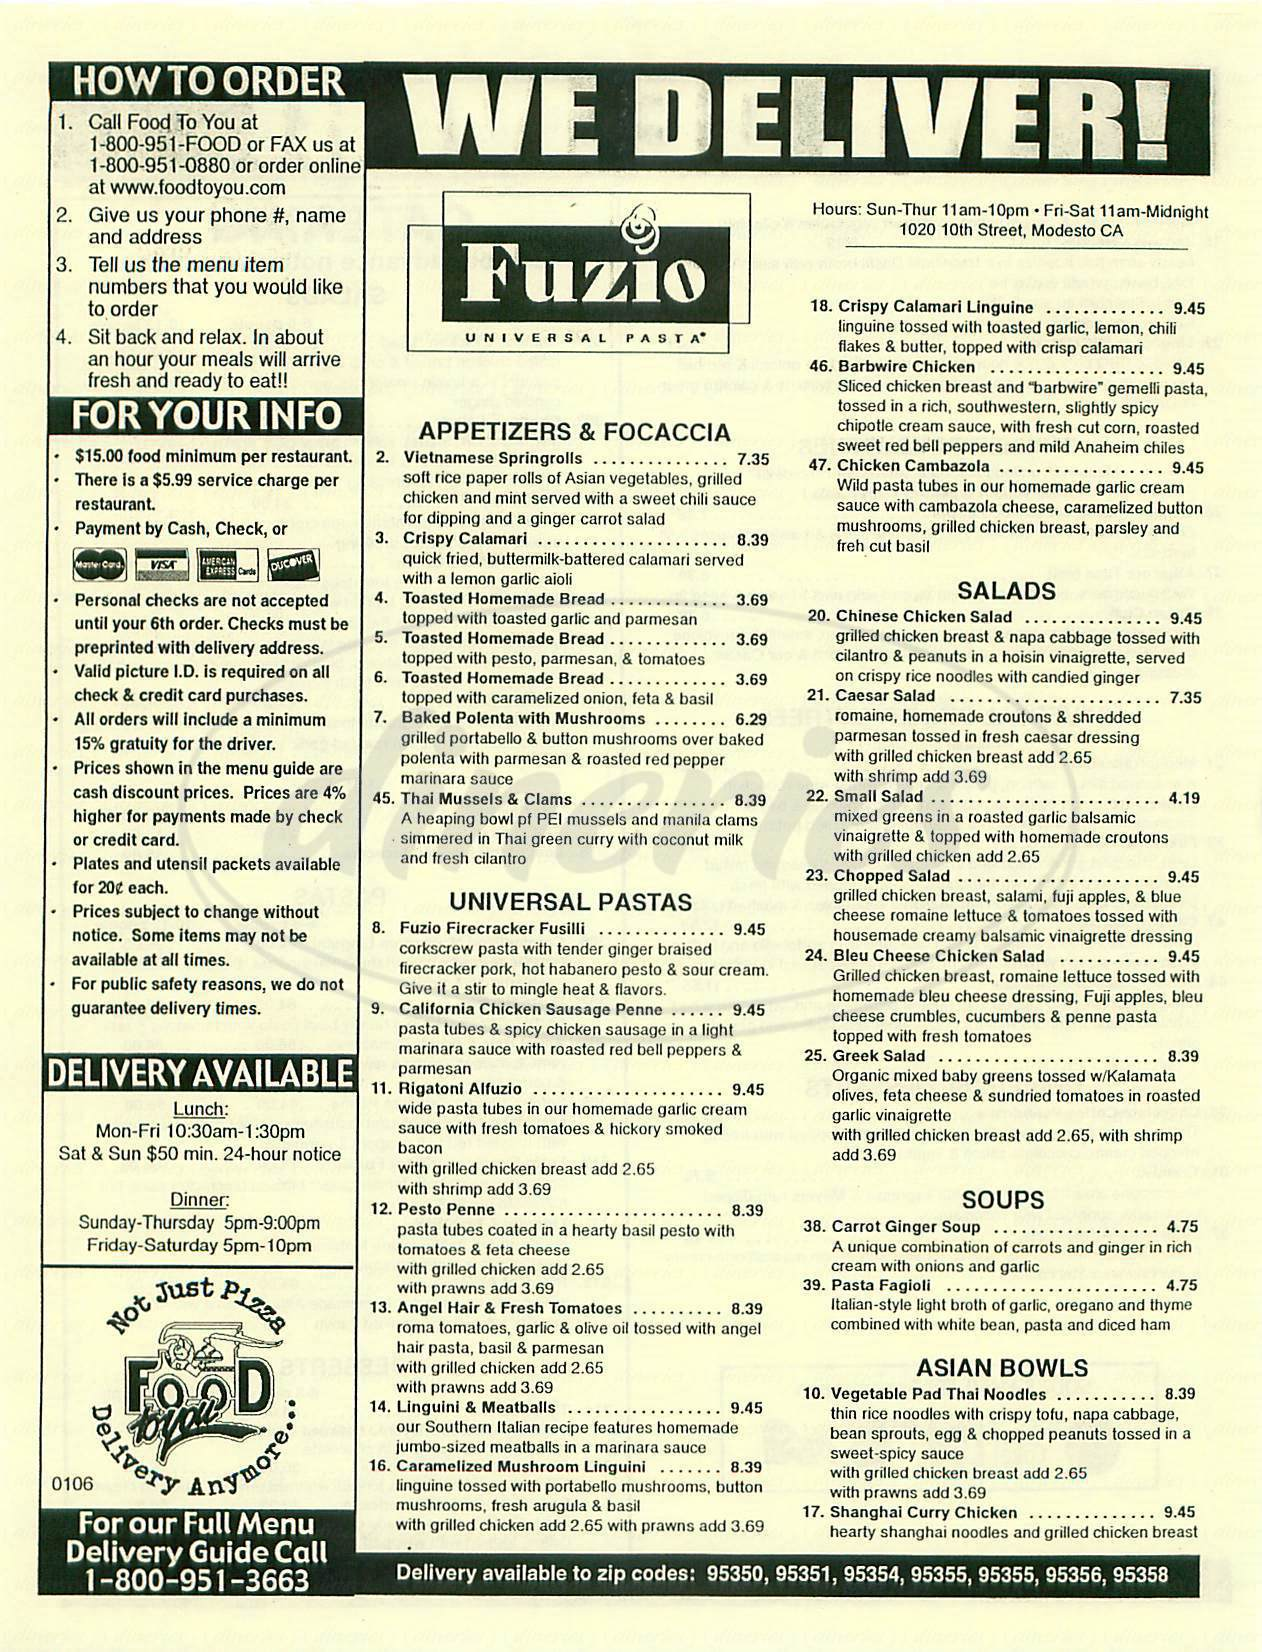 menu for Fuzio Universal Pasta